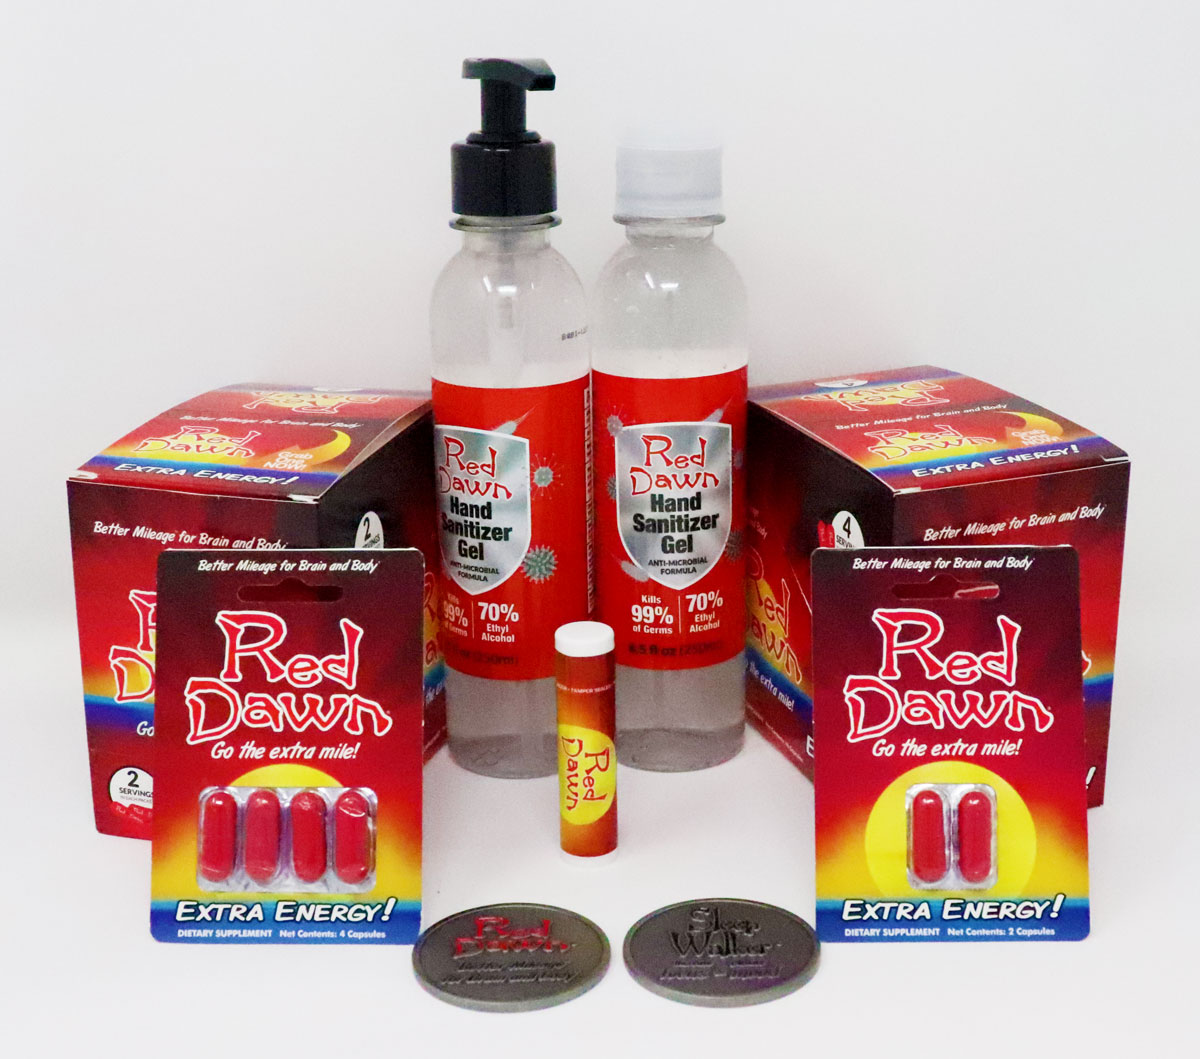 Red Dawn Products